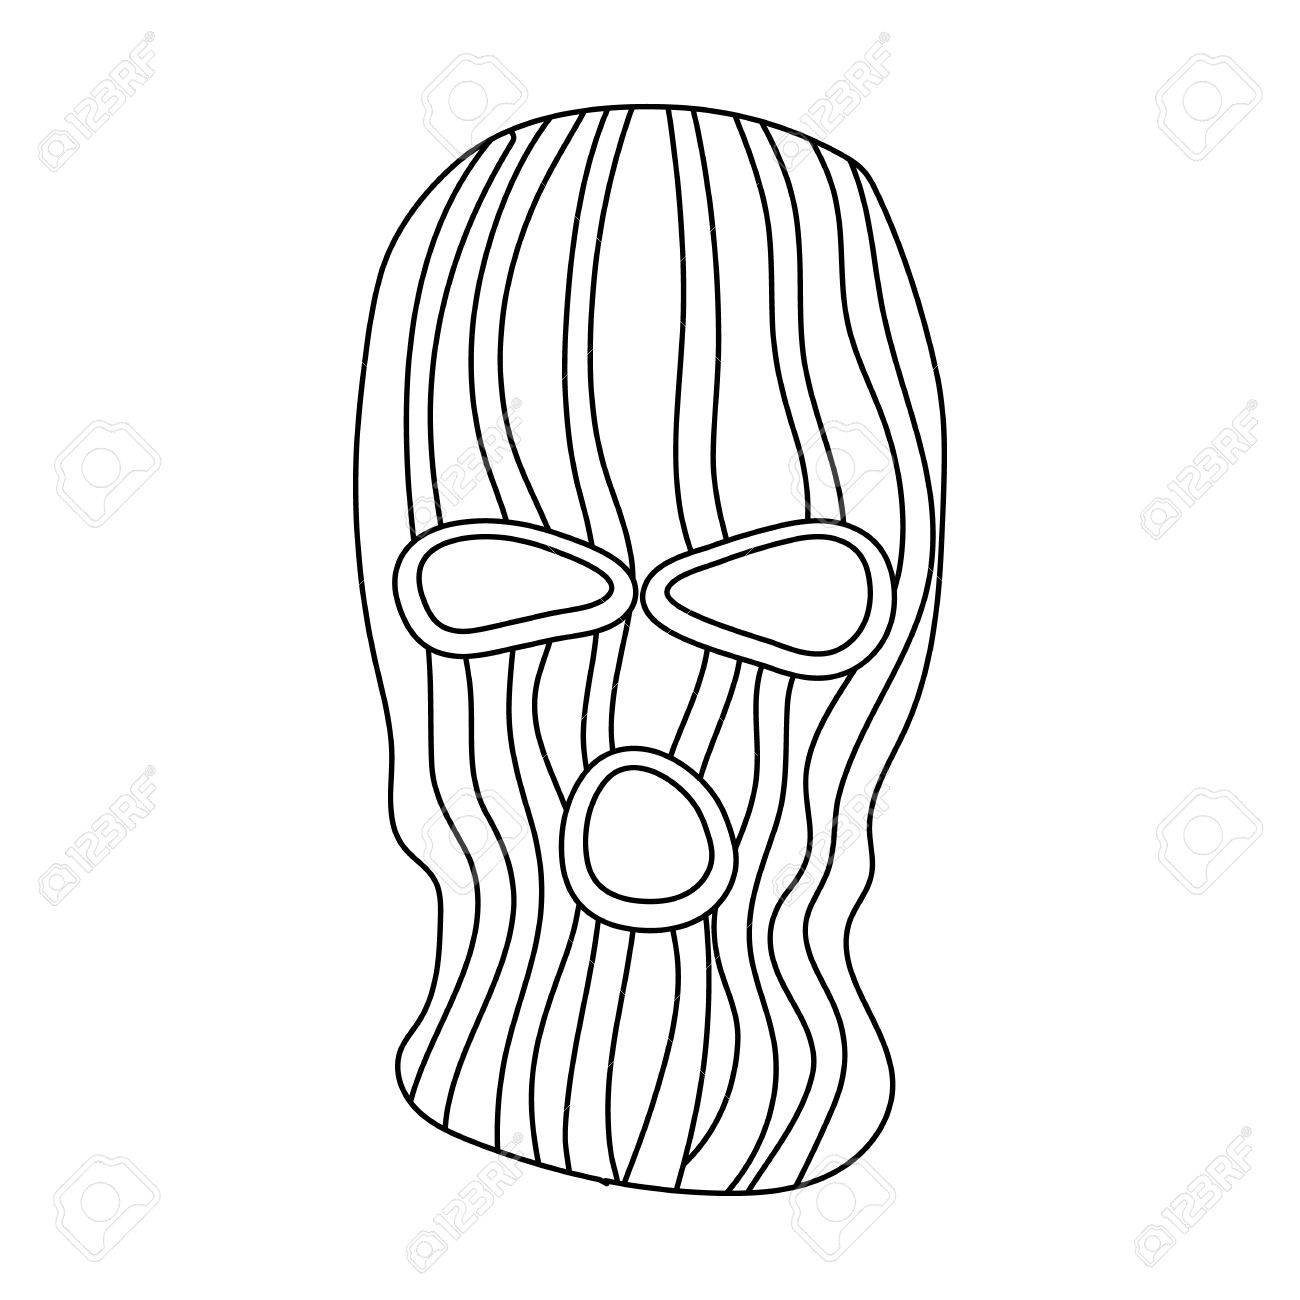 Mask To Close The Face Of The Offender From Witnesses.Prison ...